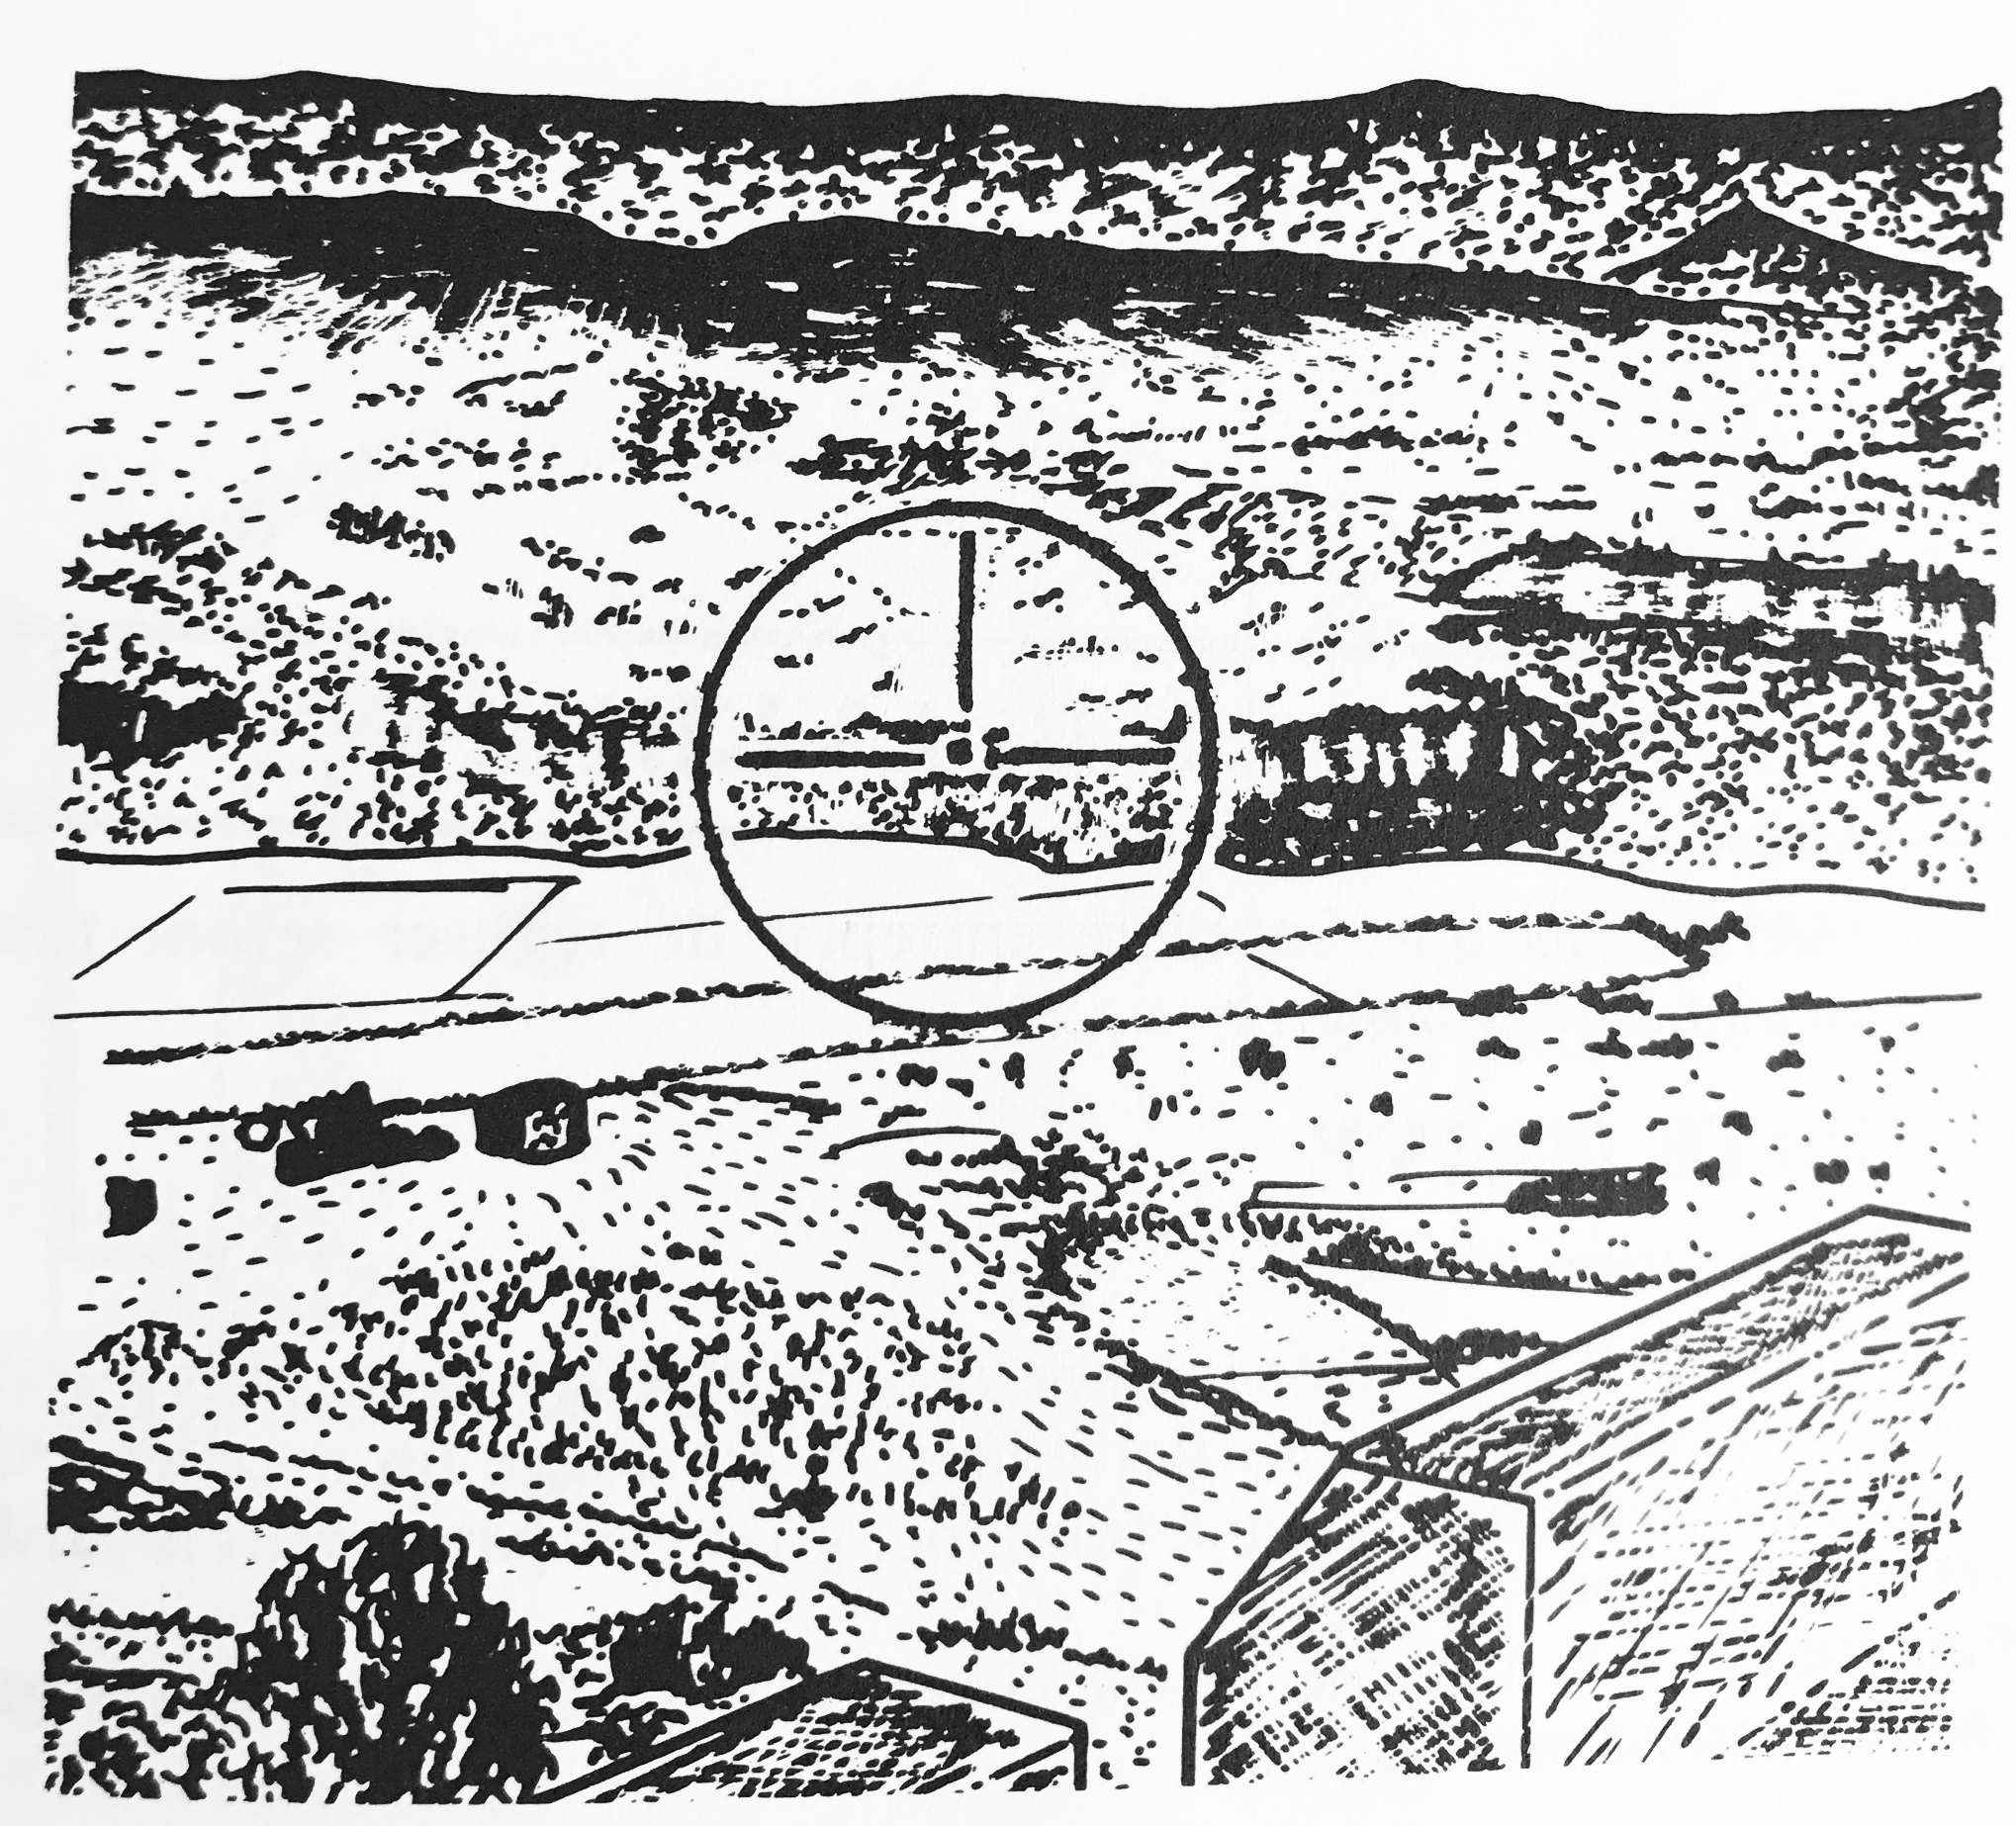 Tour Magdala, architectural drawings by Franck Marie (1978)